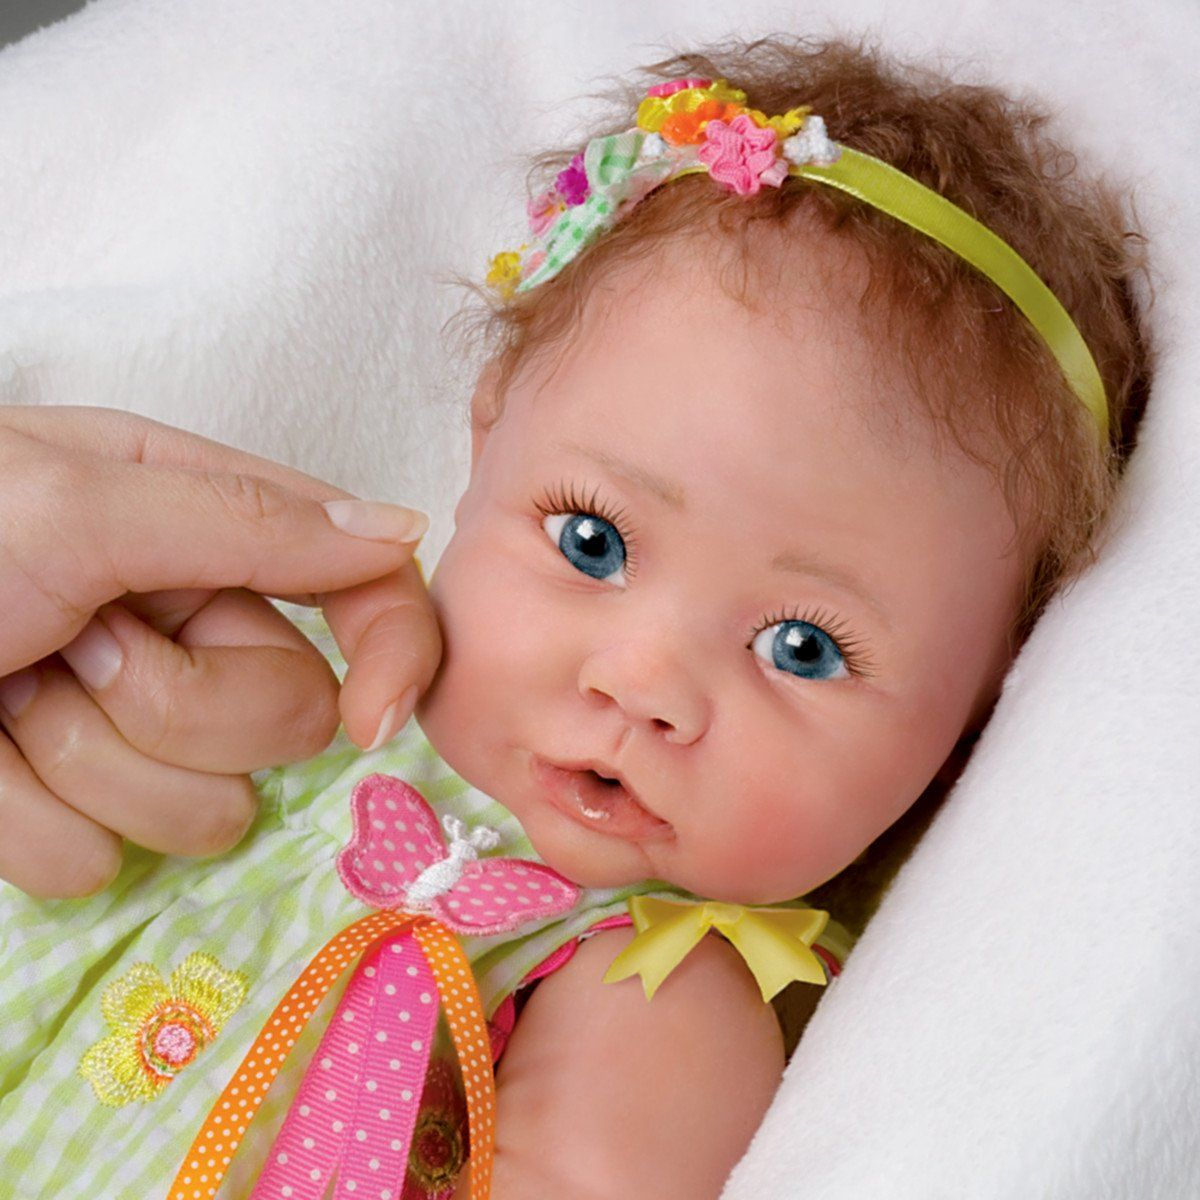 TouchActivated Lifelike Baby Doll Butterfly